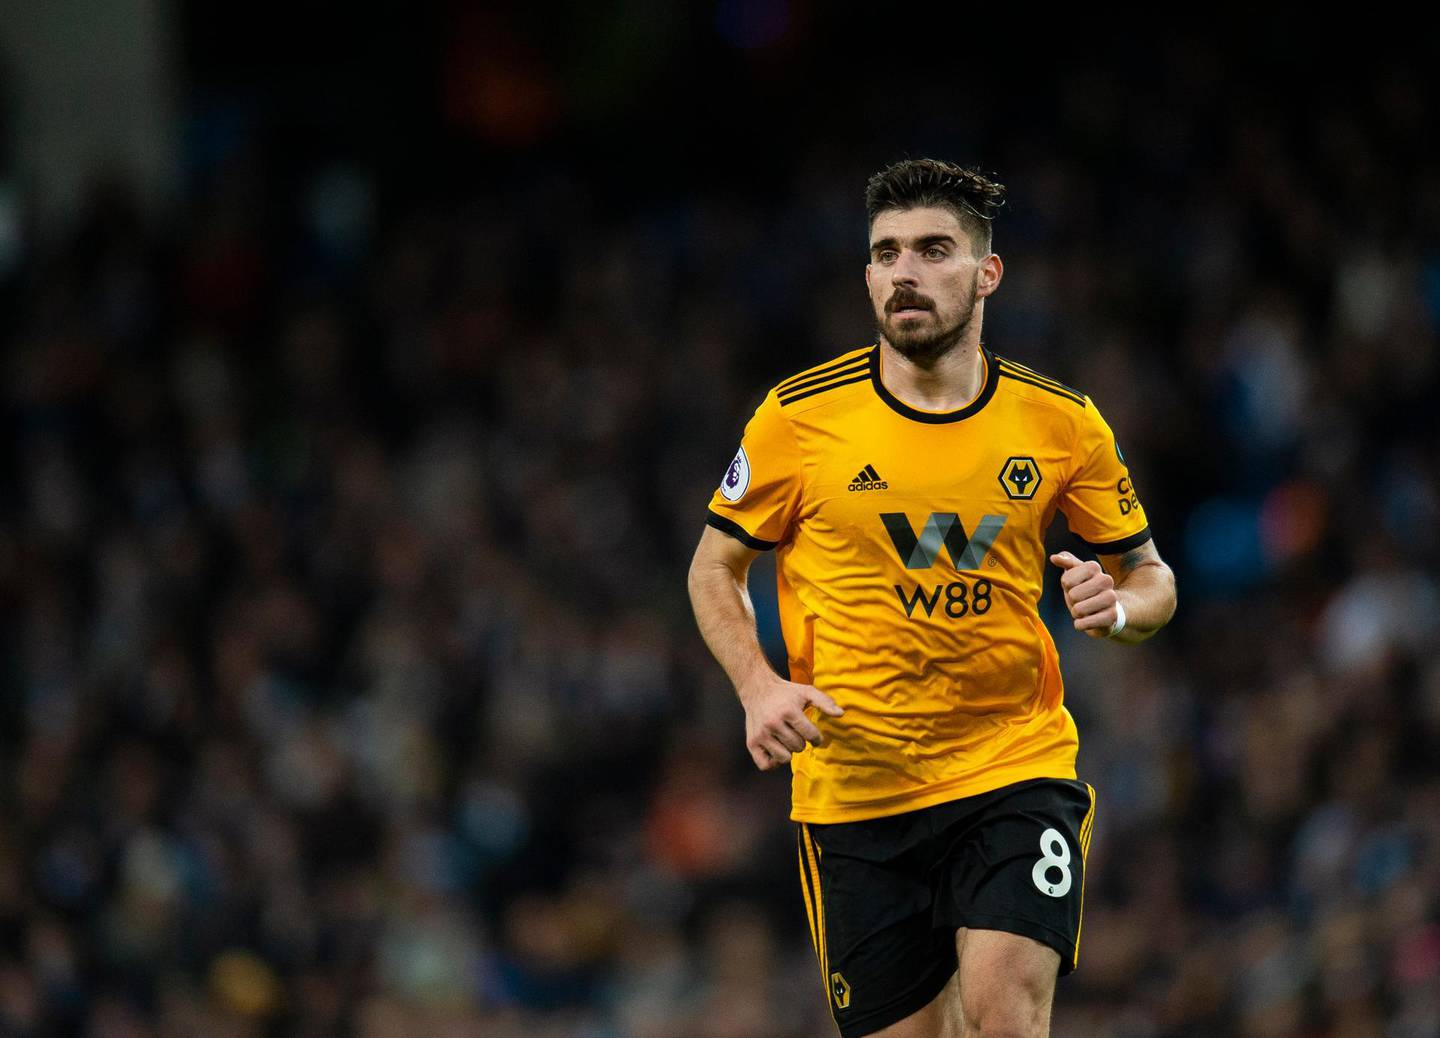 epa07284389 Wolverhampton Wanderers Ruben Neves in action during the English Premier League soccer match between Manchester City and Wolverhampton Wanderers held at the Etihad Stadium in Manchester, Britain, 14 January 2019.  EPA/PETER POWELL EDITORIAL USE ONLY. No use with unauthorized audio, video, data, fixture lists, club/league logos or 'live' services. Online in-match use limited to 120 images, no video emulation. No use in betting, games or single club/league/player publications